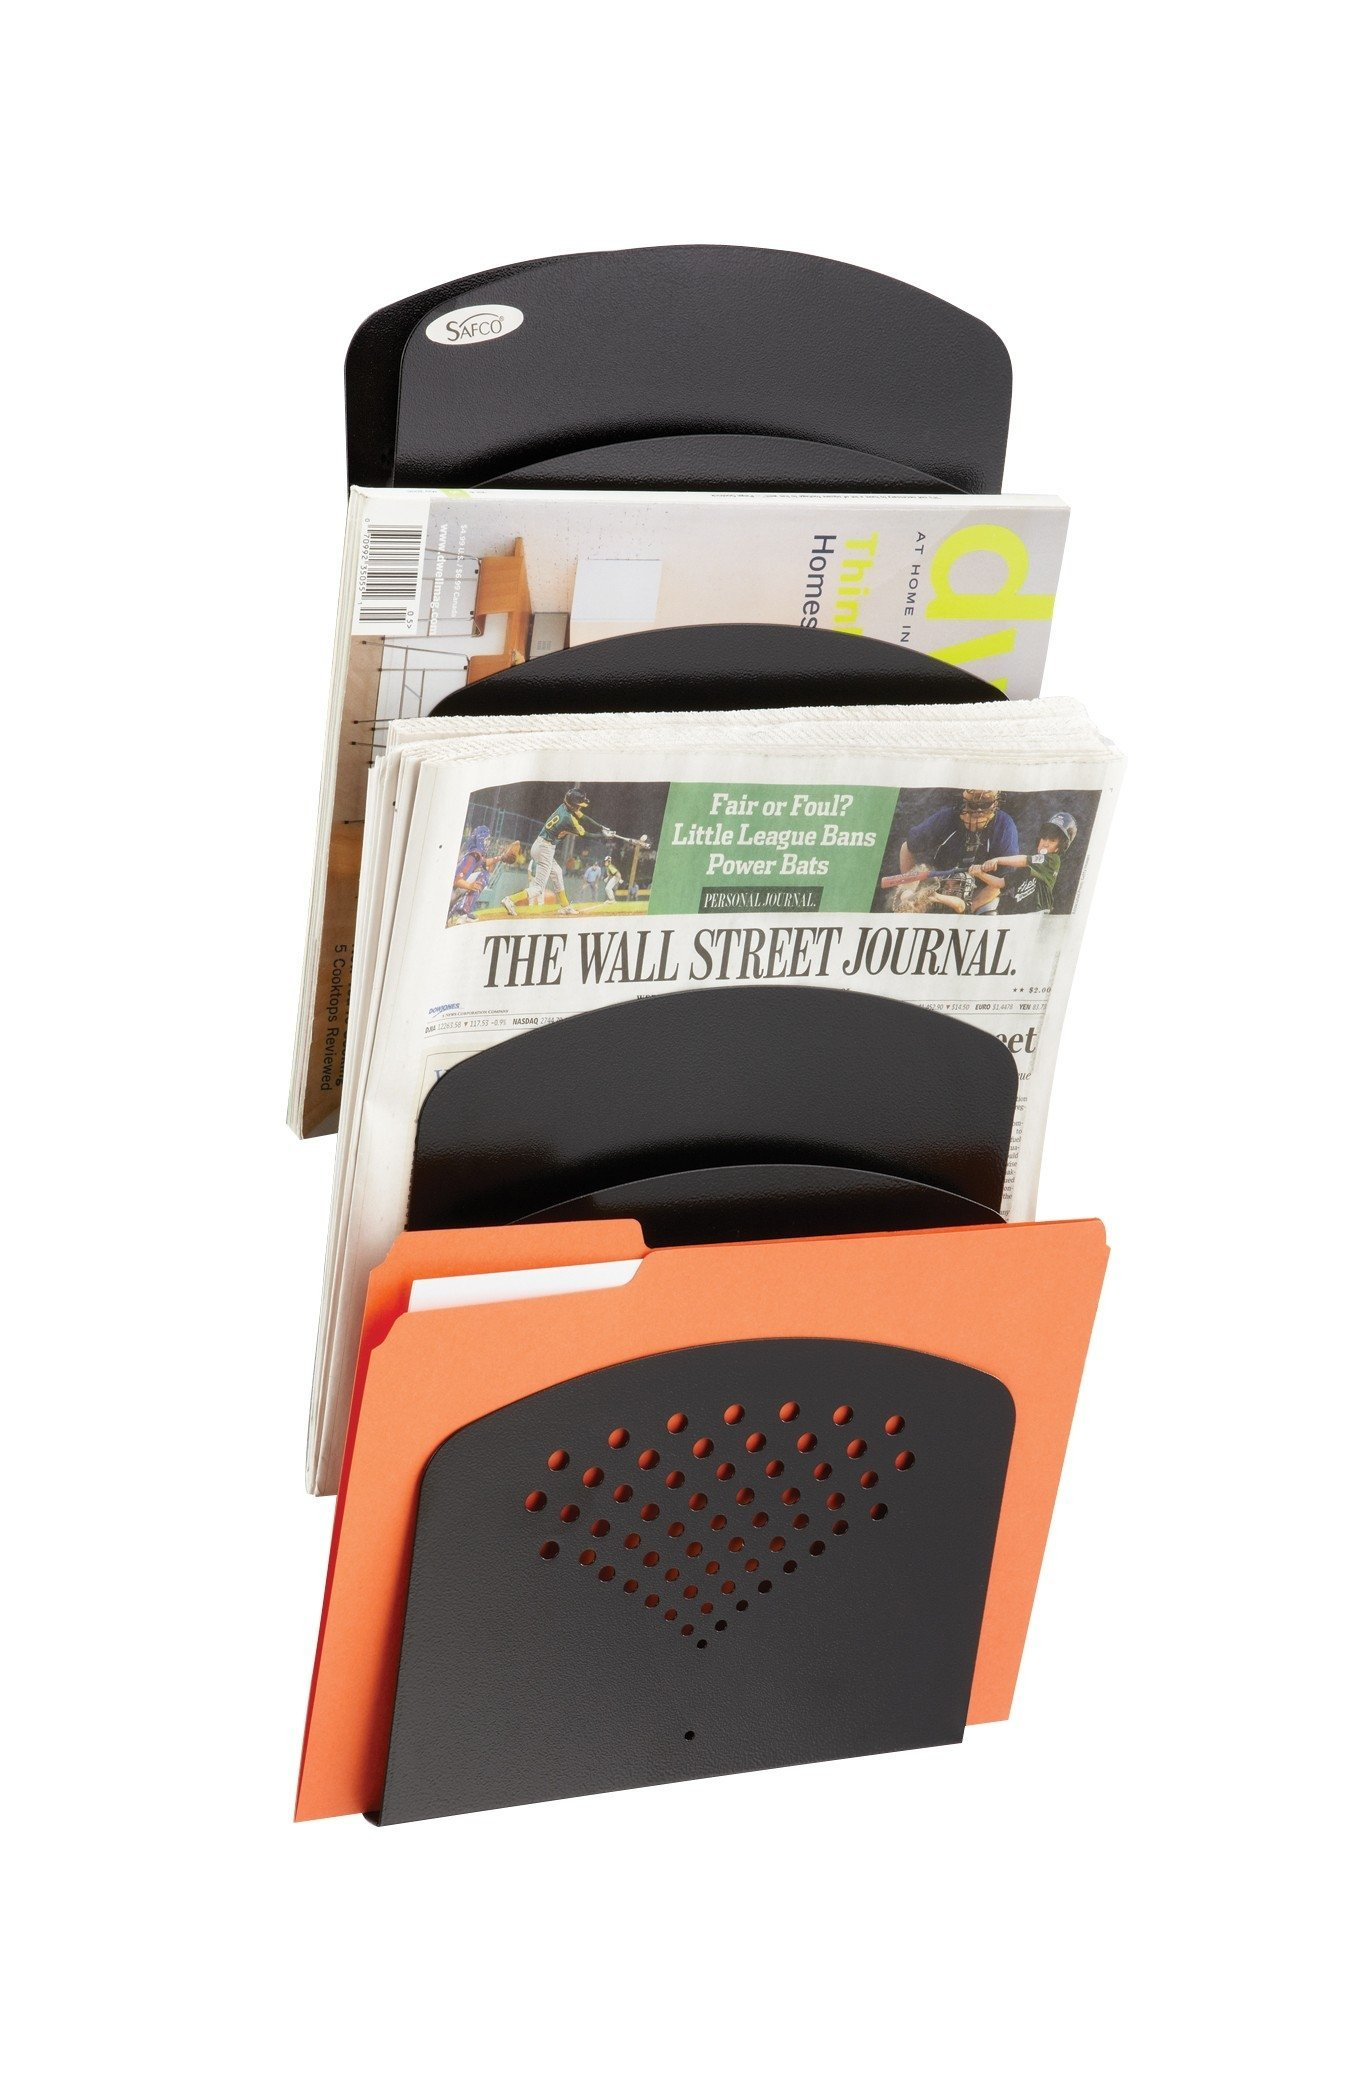 Safco Products Steel Seven Pocket Letter/Legal Wall Rack 3185BL, Black Powder Coat Finish, Durable Commercial-Steel Construction by Safco Products